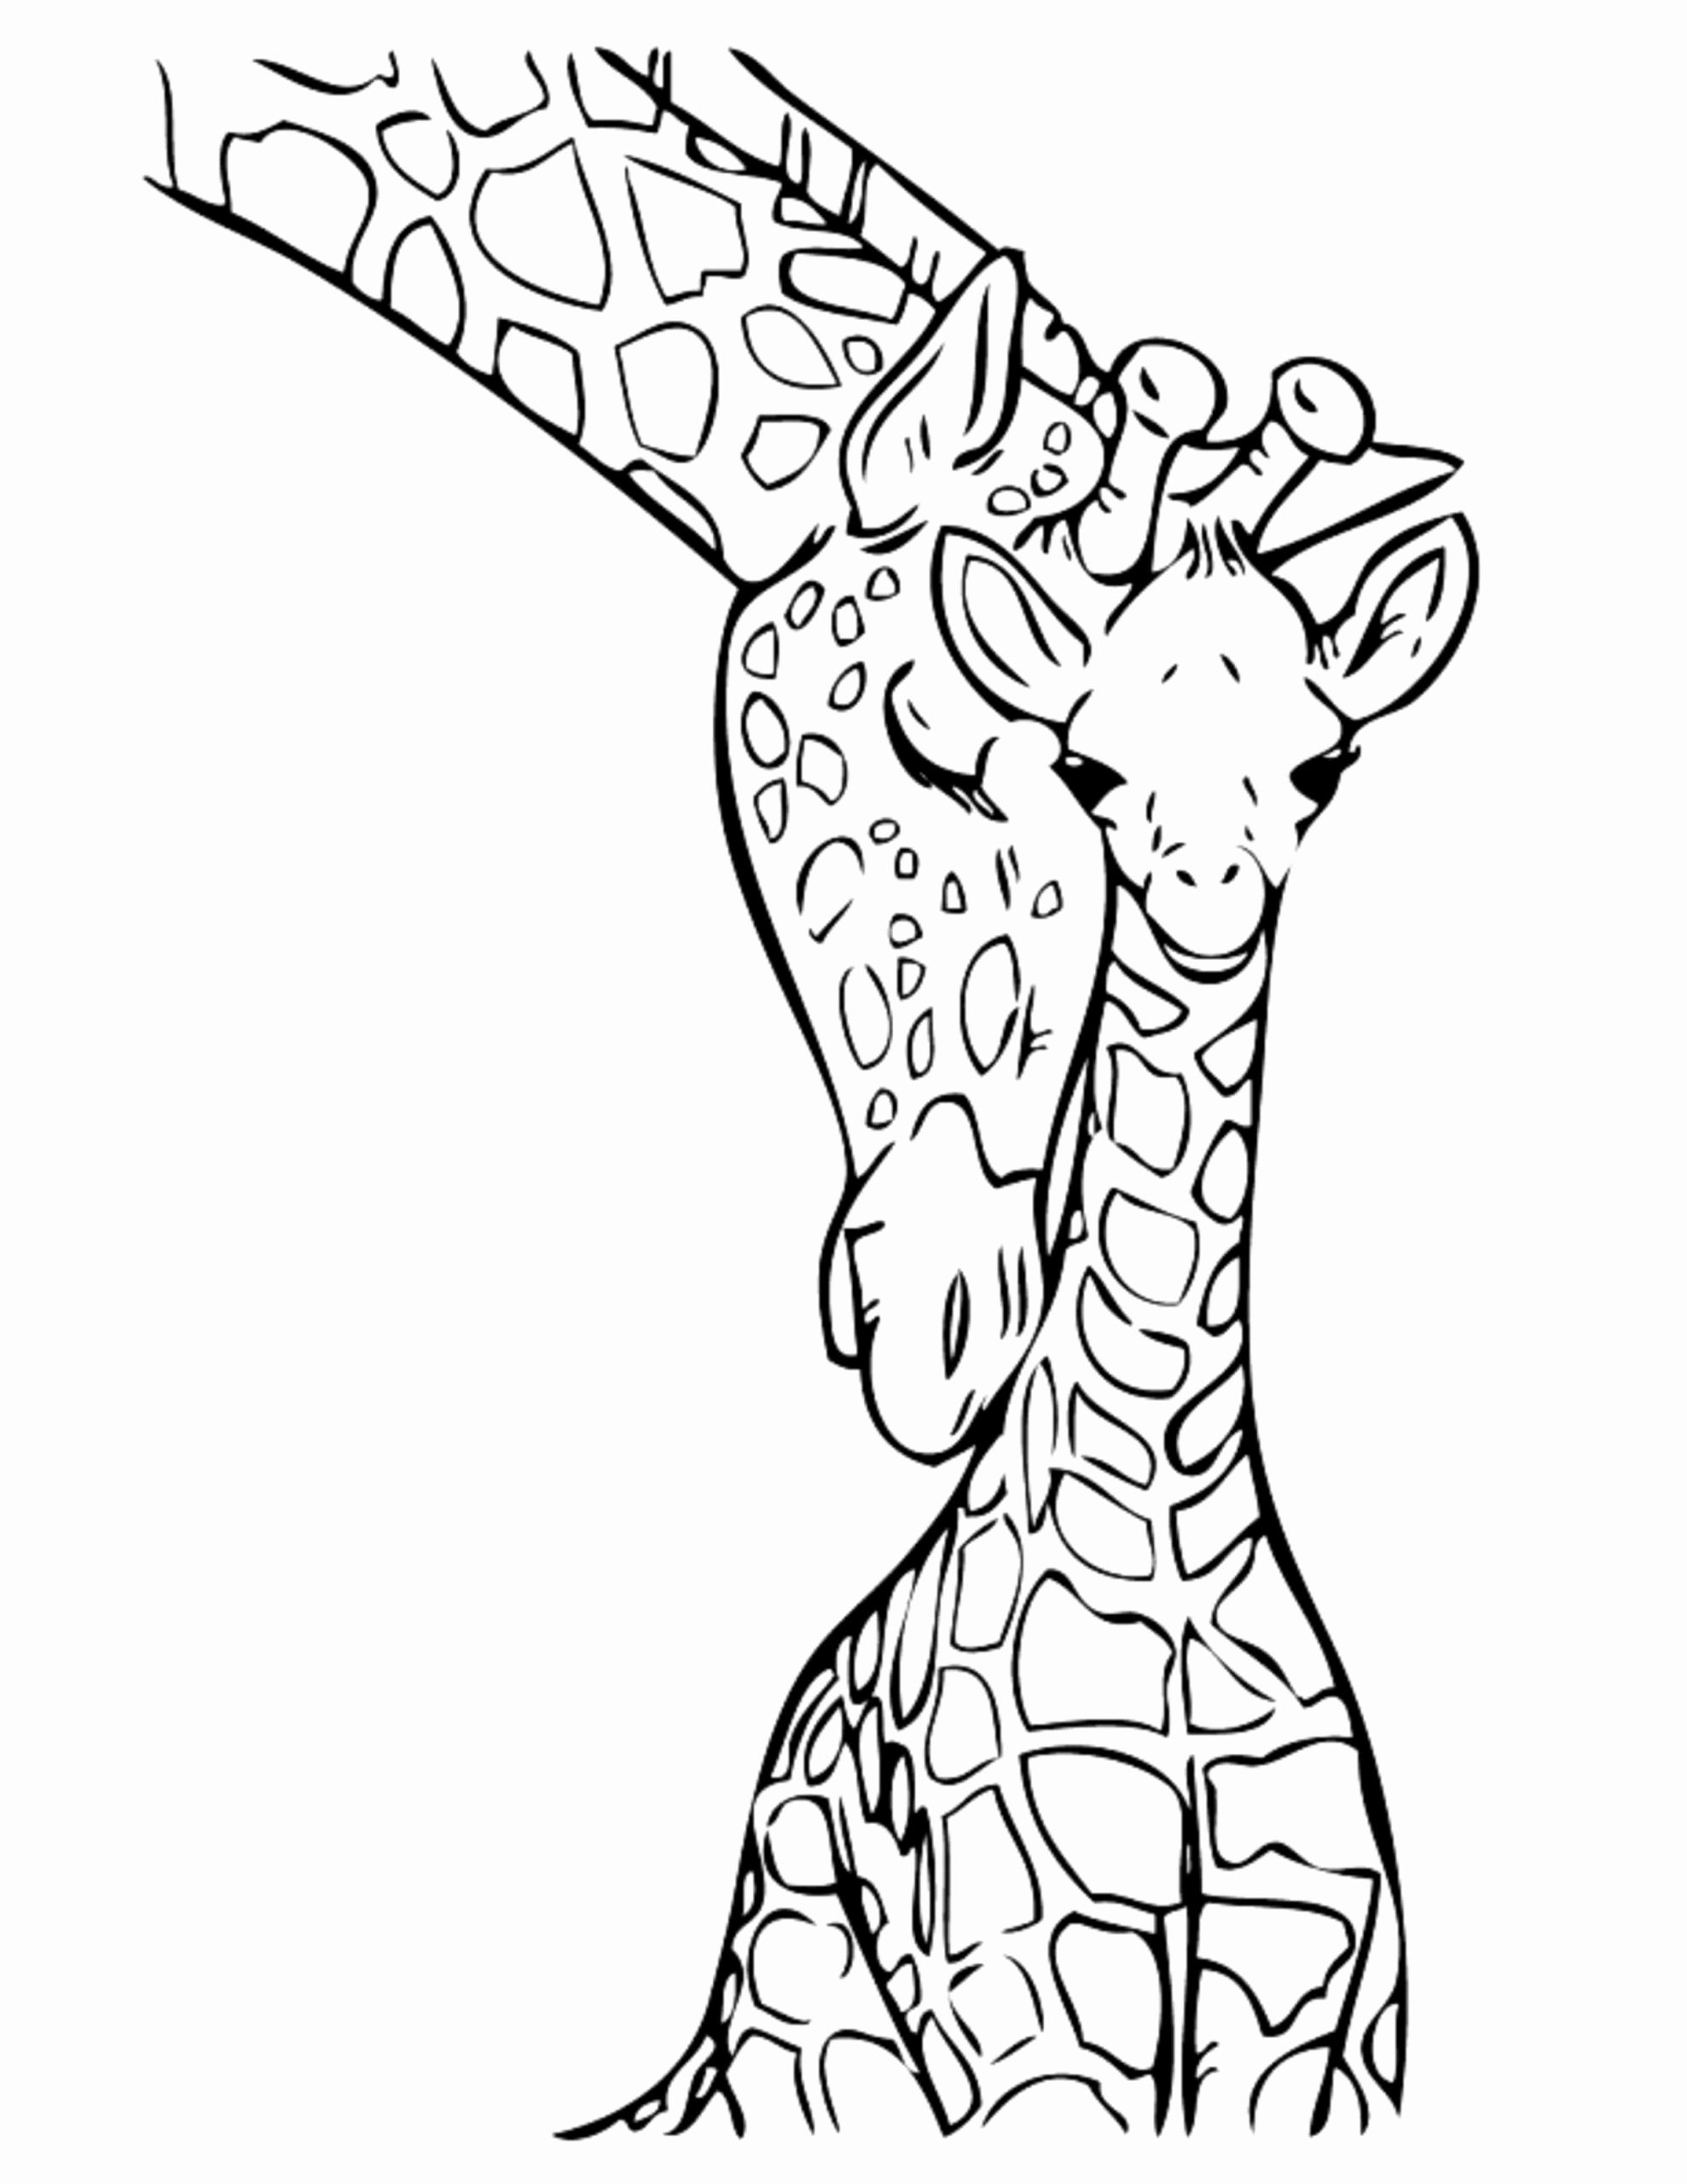 Kids Animal Coloring Pages Free In 2020 Jungle Coloring Pages Giraffe Coloring Pages Animal Coloring Books